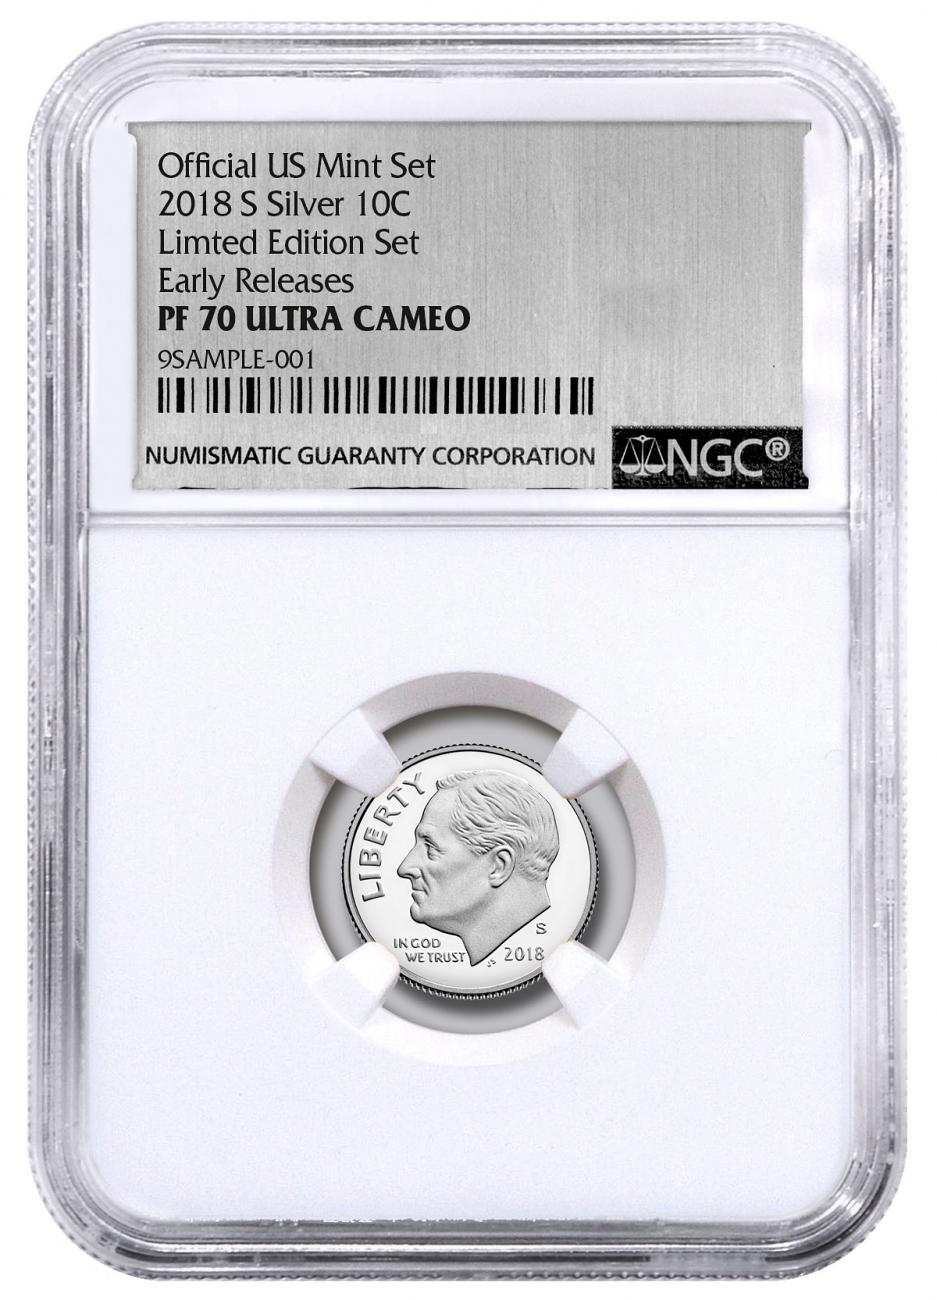 2018-S Silver Proof Roosevelt Dime From Limited Edition Silver Proof Set NGC PF70 UC ER Silver Foil Label